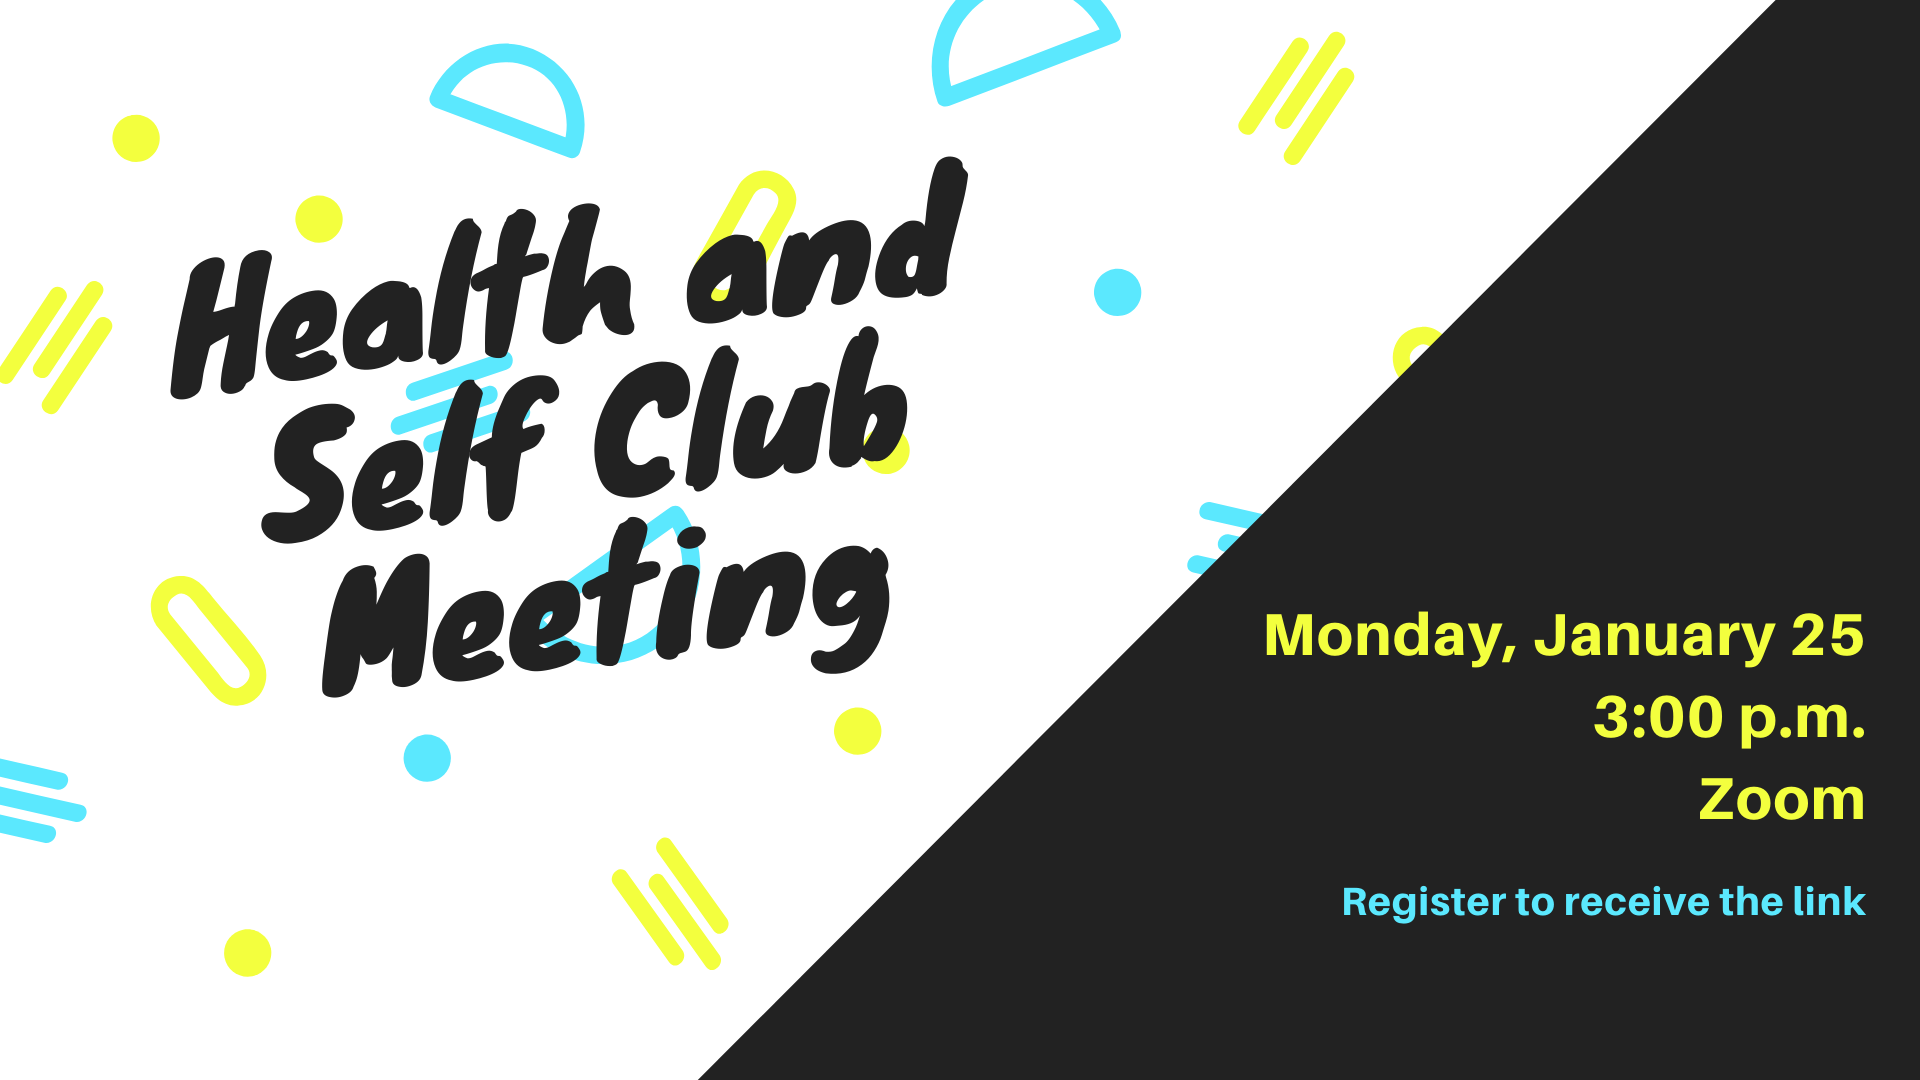 Health and Self Club Meeting (Virtual)